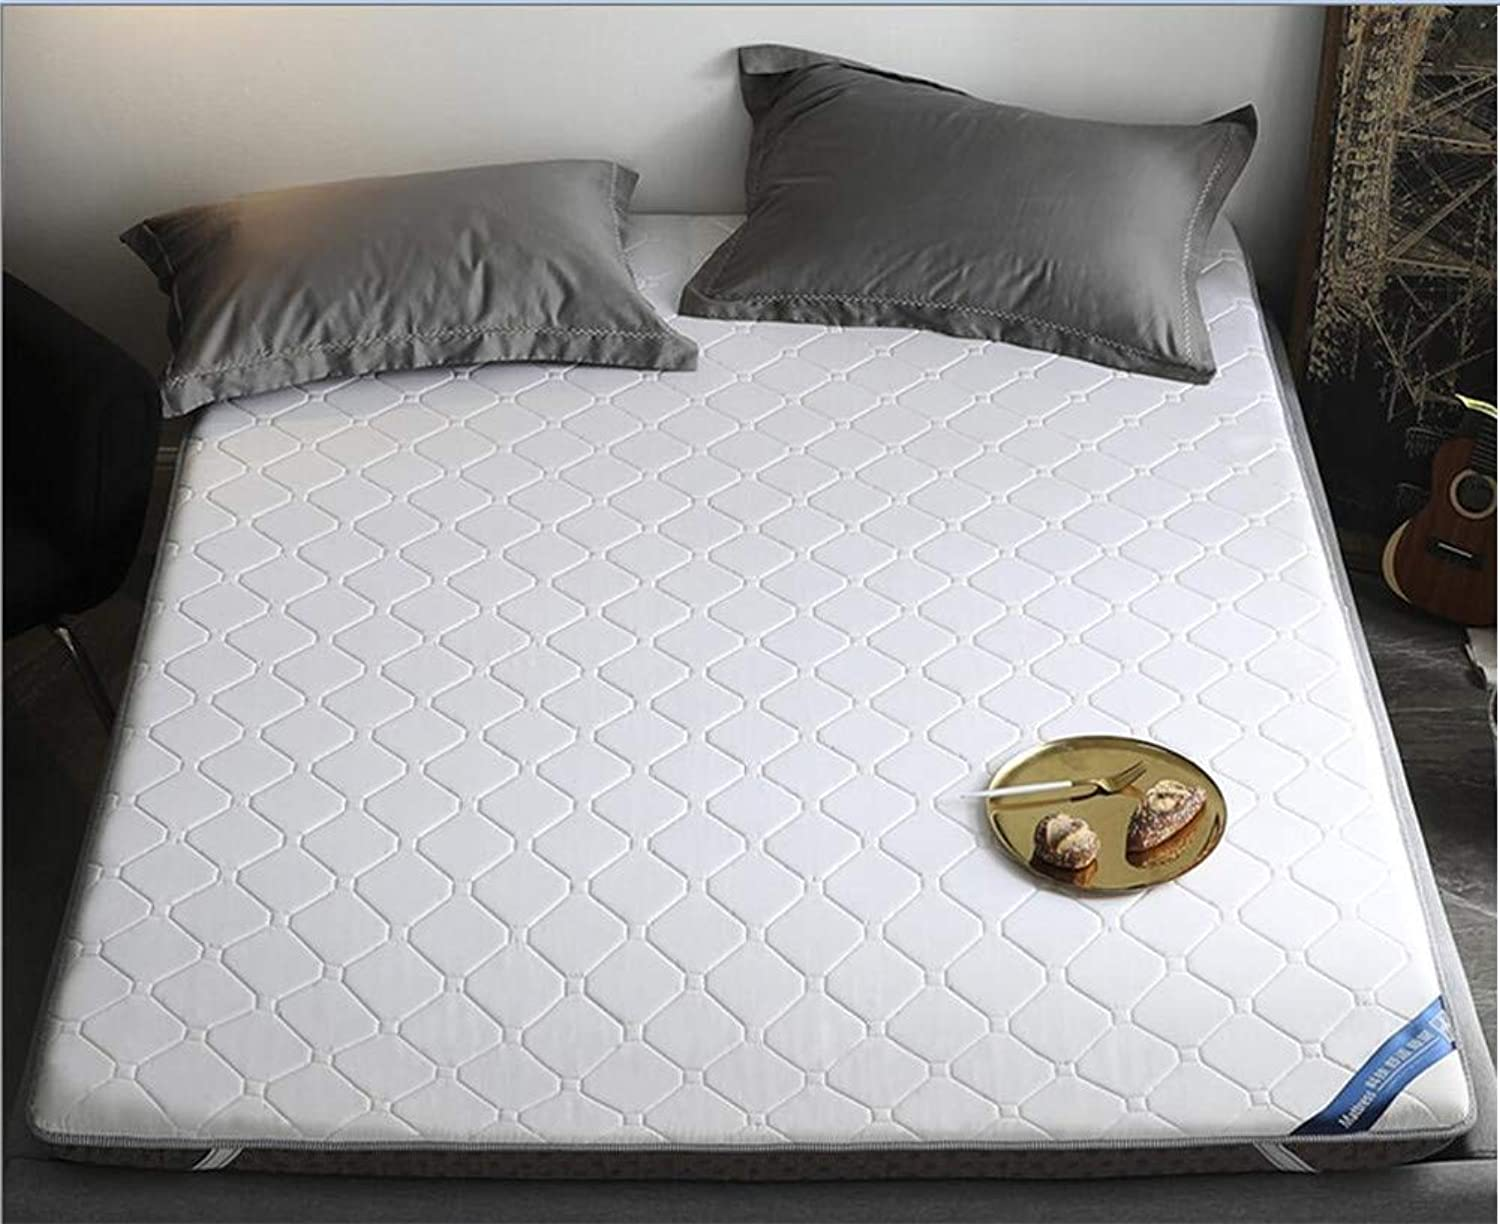 Padded Mattress,Antibacterial Single Double Tatami Mattress,for Student Dormitory Family Room-B 120x200cm(47x79inch)